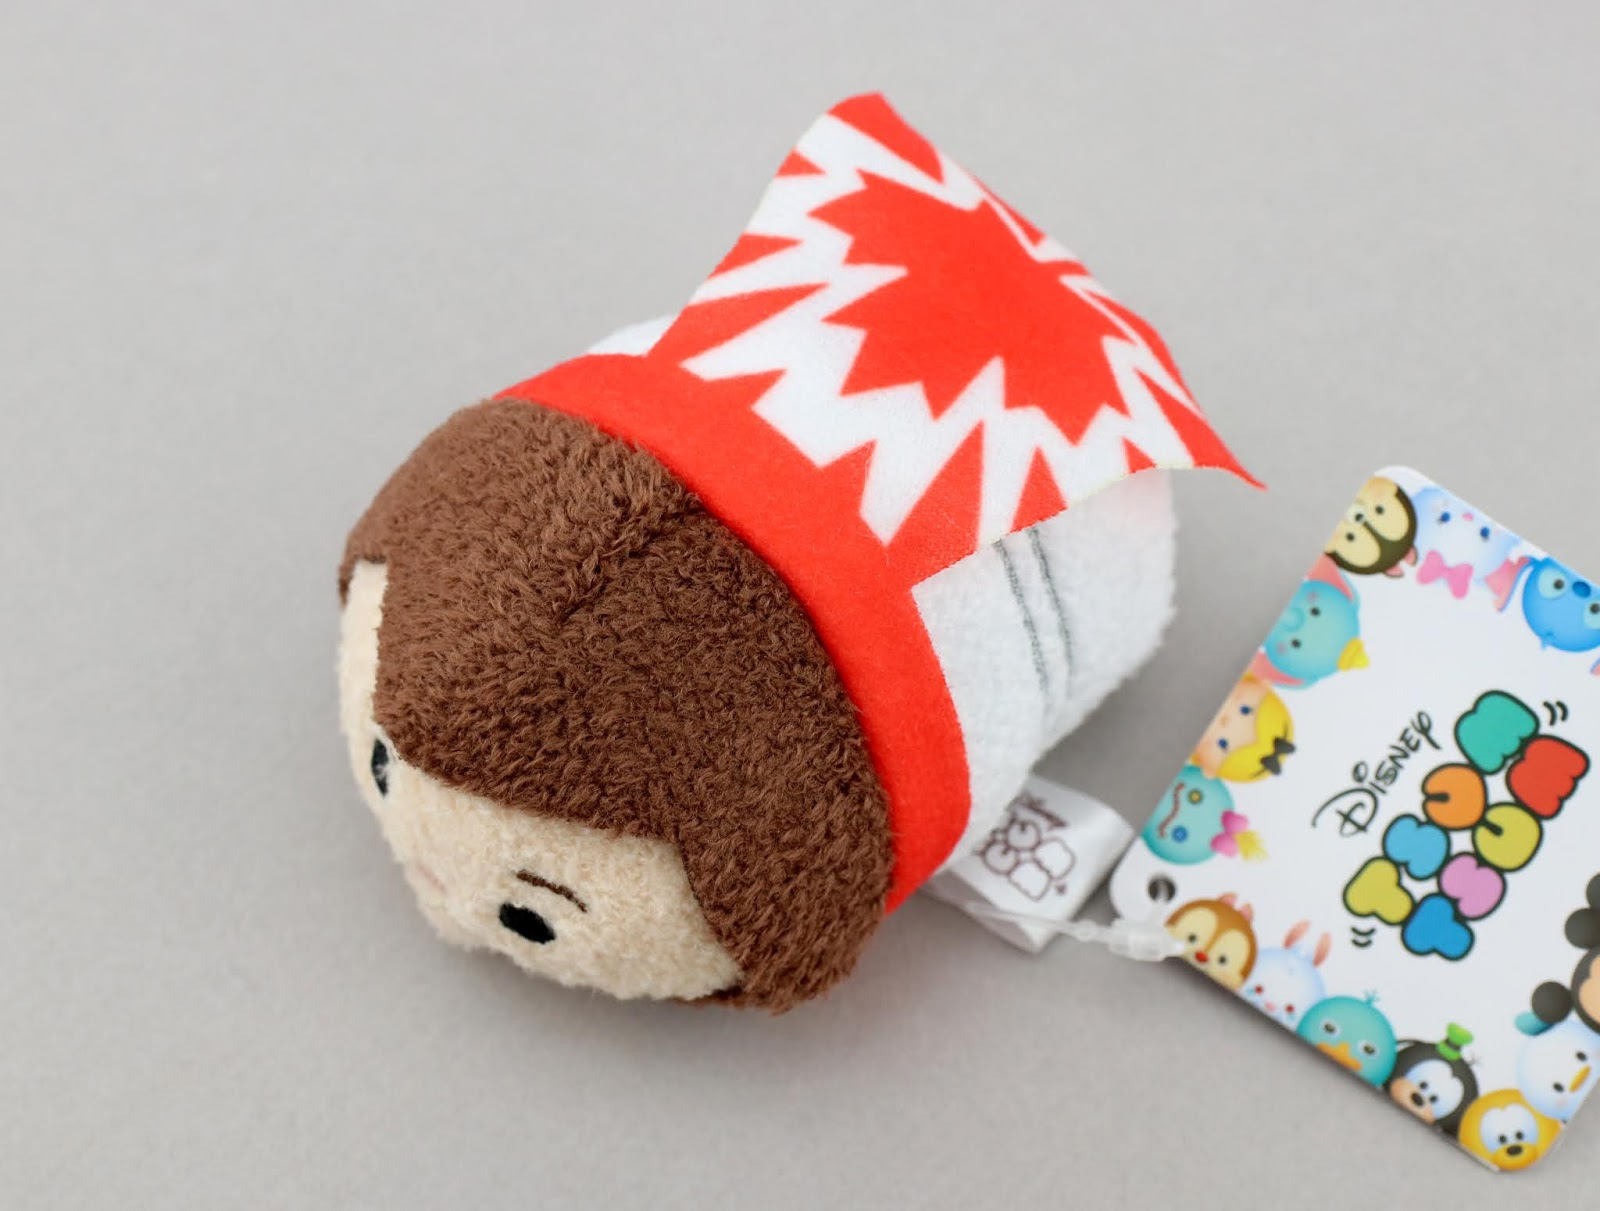 toy story 4 tsum tsums duke